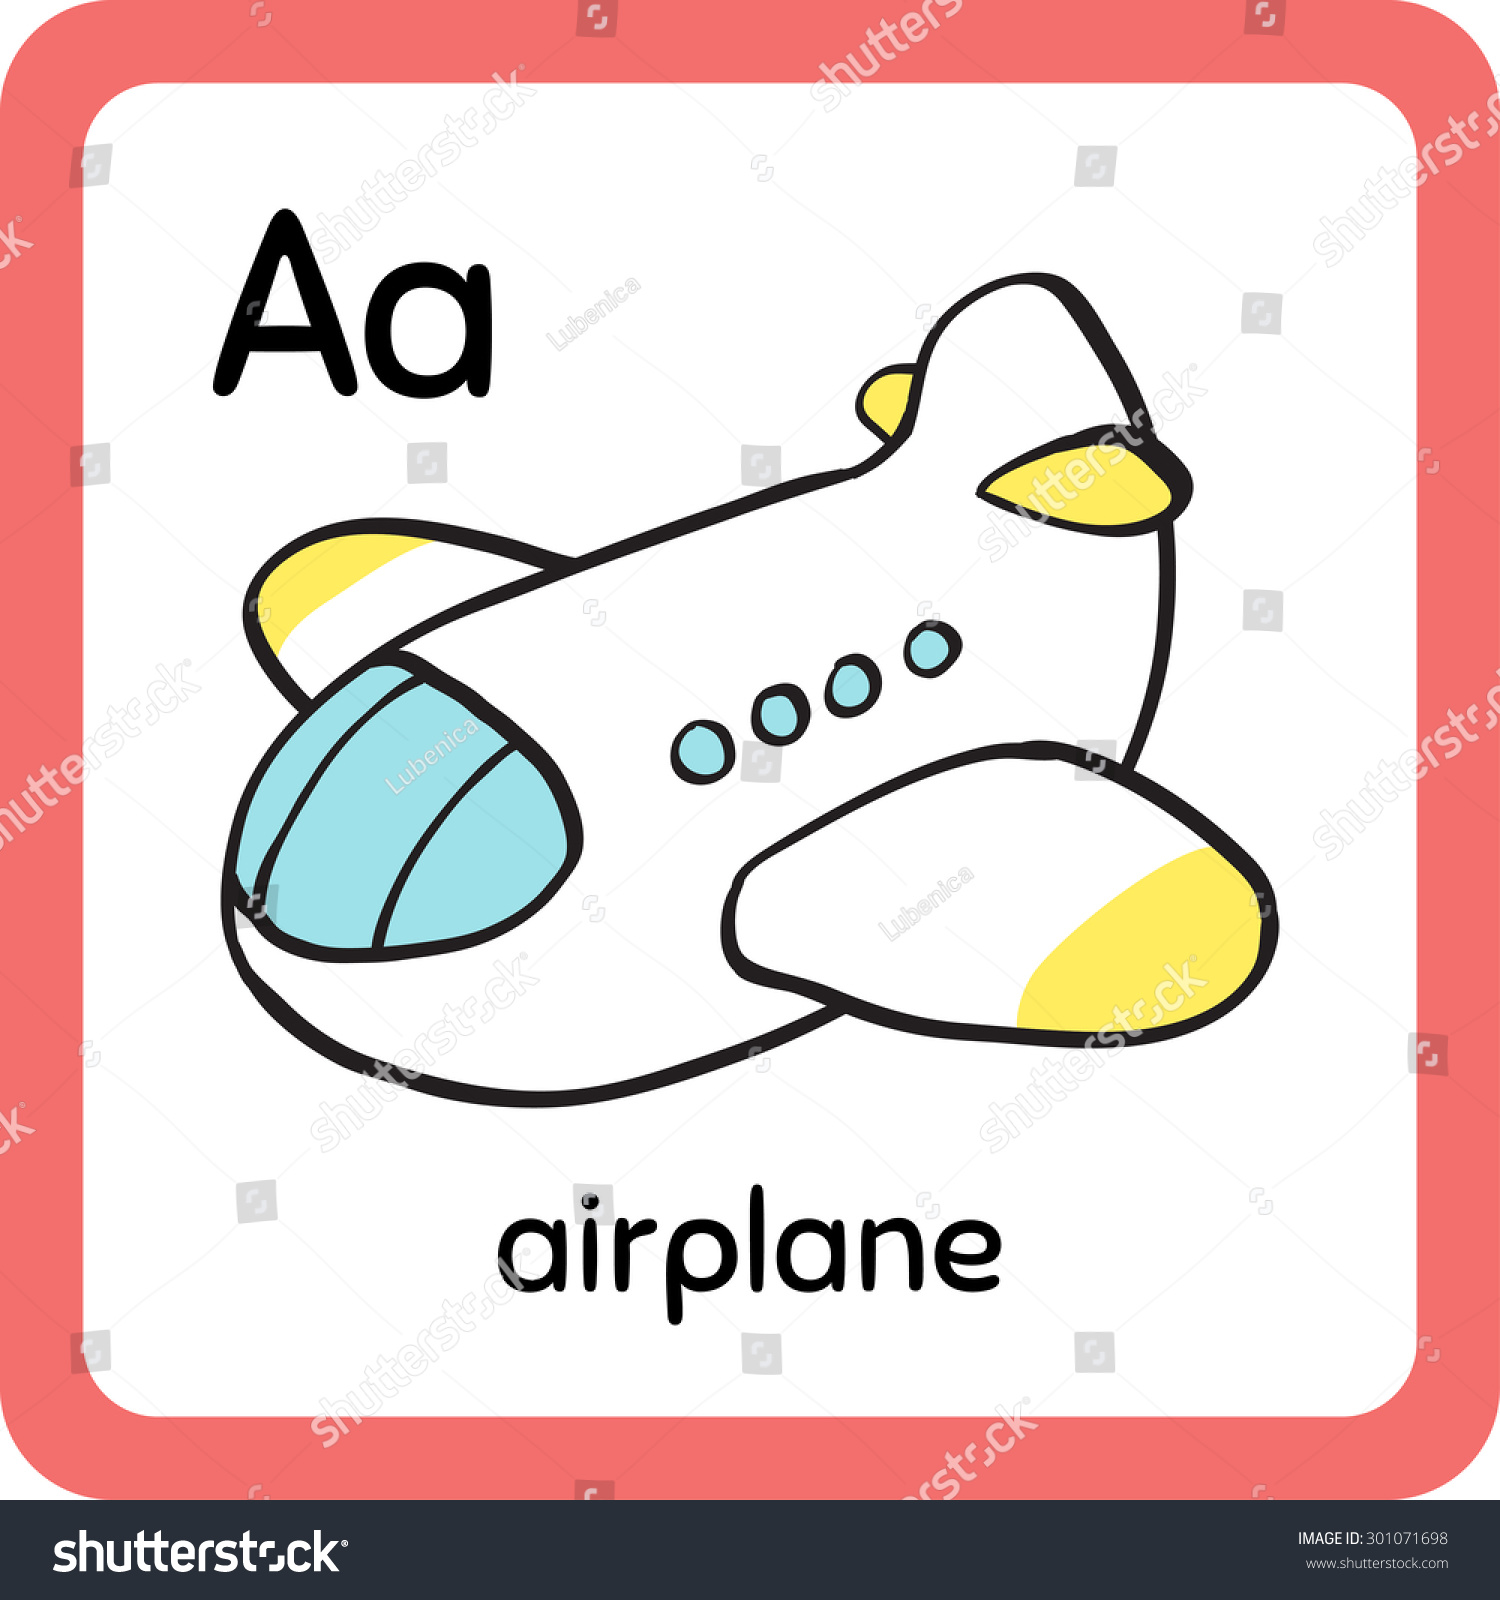 Worksheet First Words Flash Cards Printable worksheet first words flash cards printable mikyu free colorful cartoon cute toy airplane sky stock vector 301071698 in